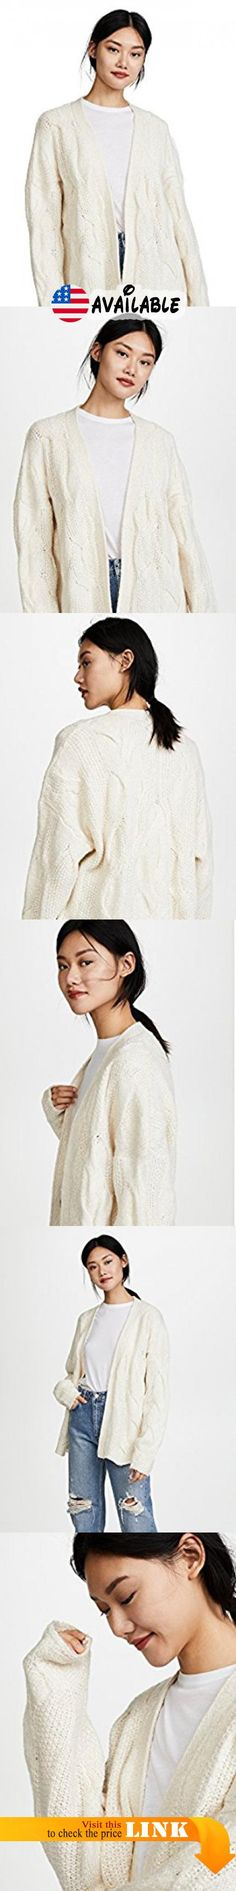 B07811WBBV : LINE Women's Marion Cardigan Ivory X-Small. Cable knit. 50% cotton/30% acrylic/11% polyester/6% alpaca/2% nylon. Dry clean. Width Length: 27.25in / 69cm from shoulder #Apparel #SWEATER